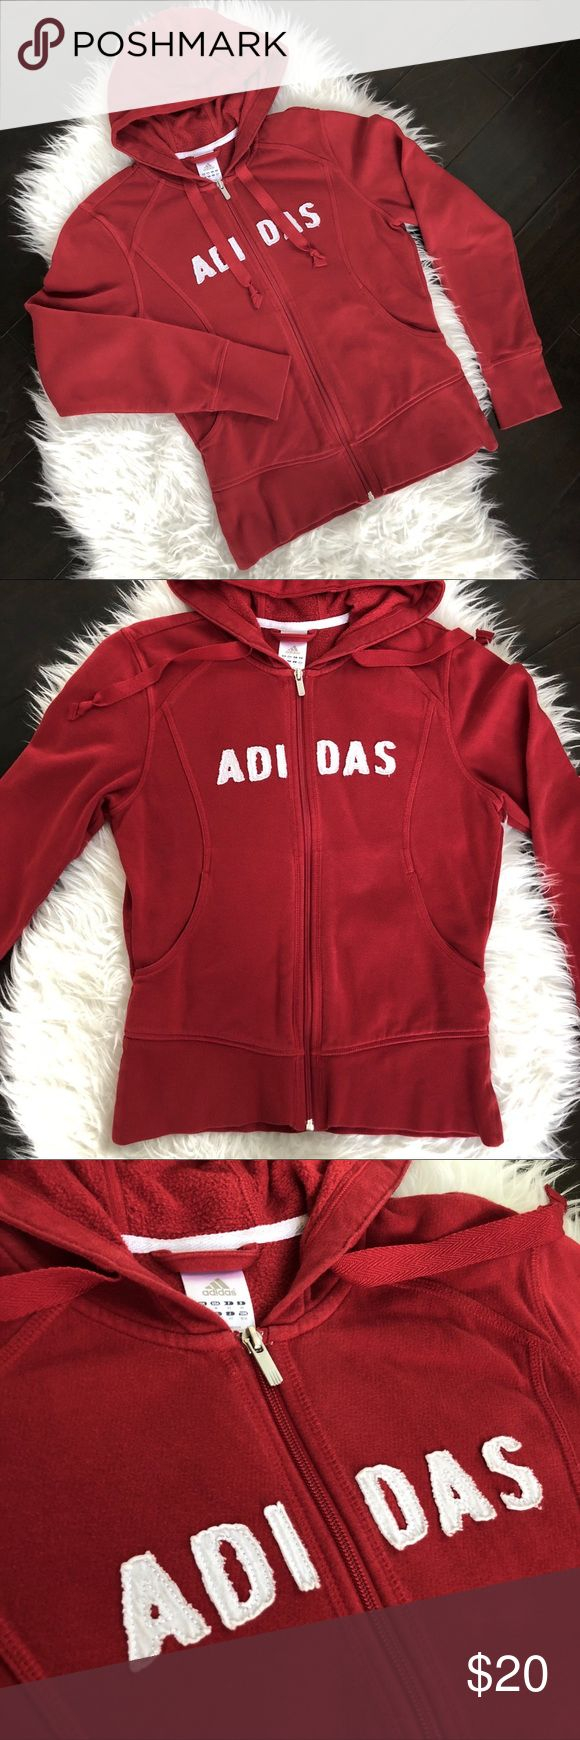 Adidas Zip-Up Hoodie, Red Adidas, Zip-Up Hoodie in Red.  Color is close to a true red with some fading from normal washing & wearing.  Good used condition.  Cotton/Polyester/Spandex. Machine wash. adidas Tops Sweatshirts & Hoodies